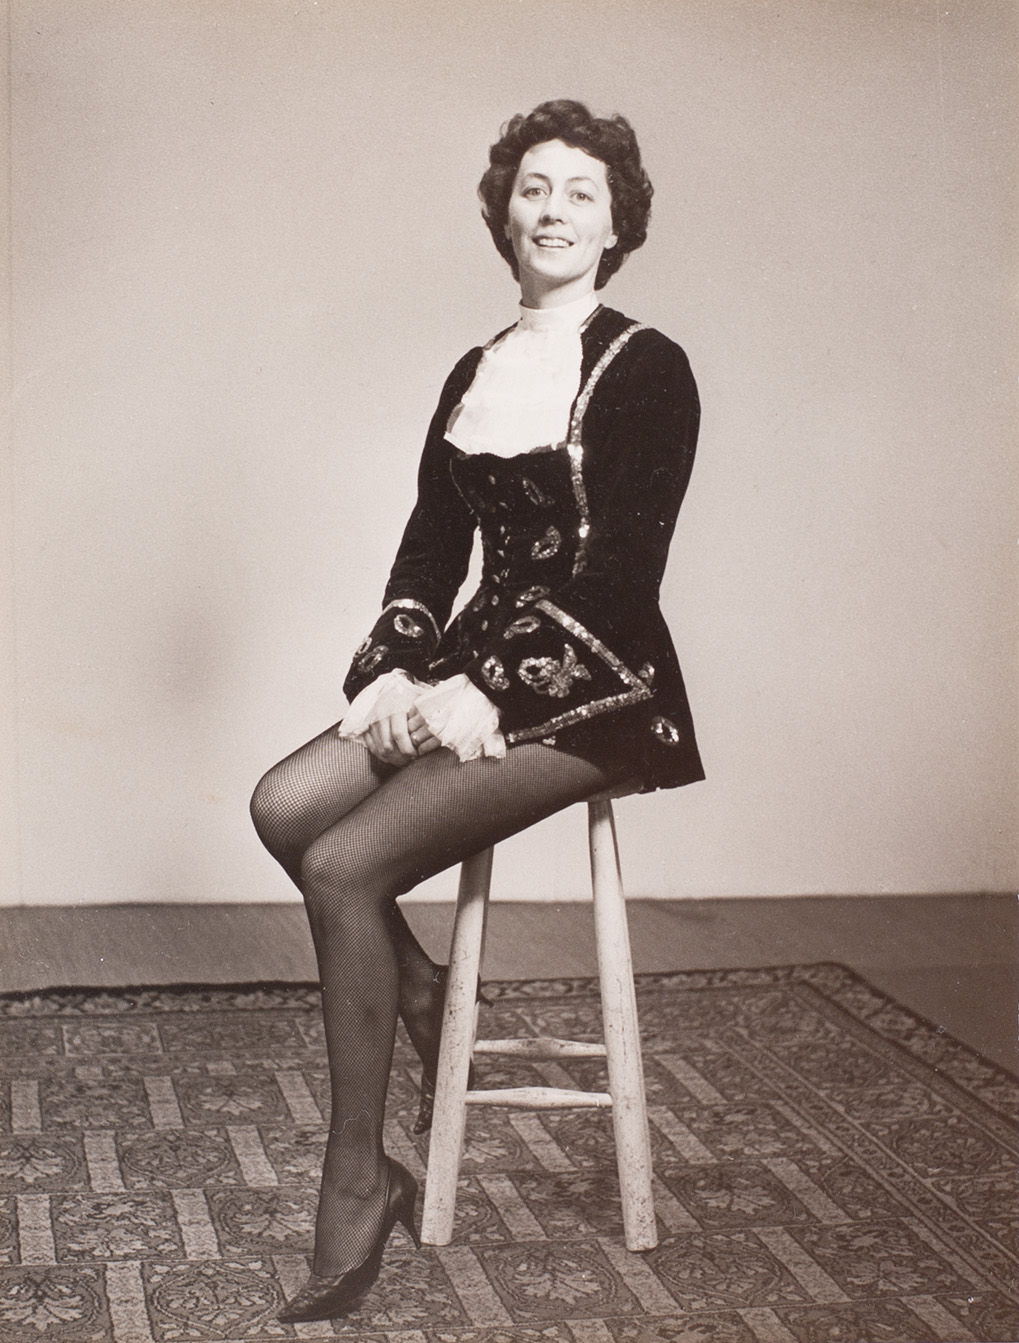 Photograph of Sheila Robbins in costume